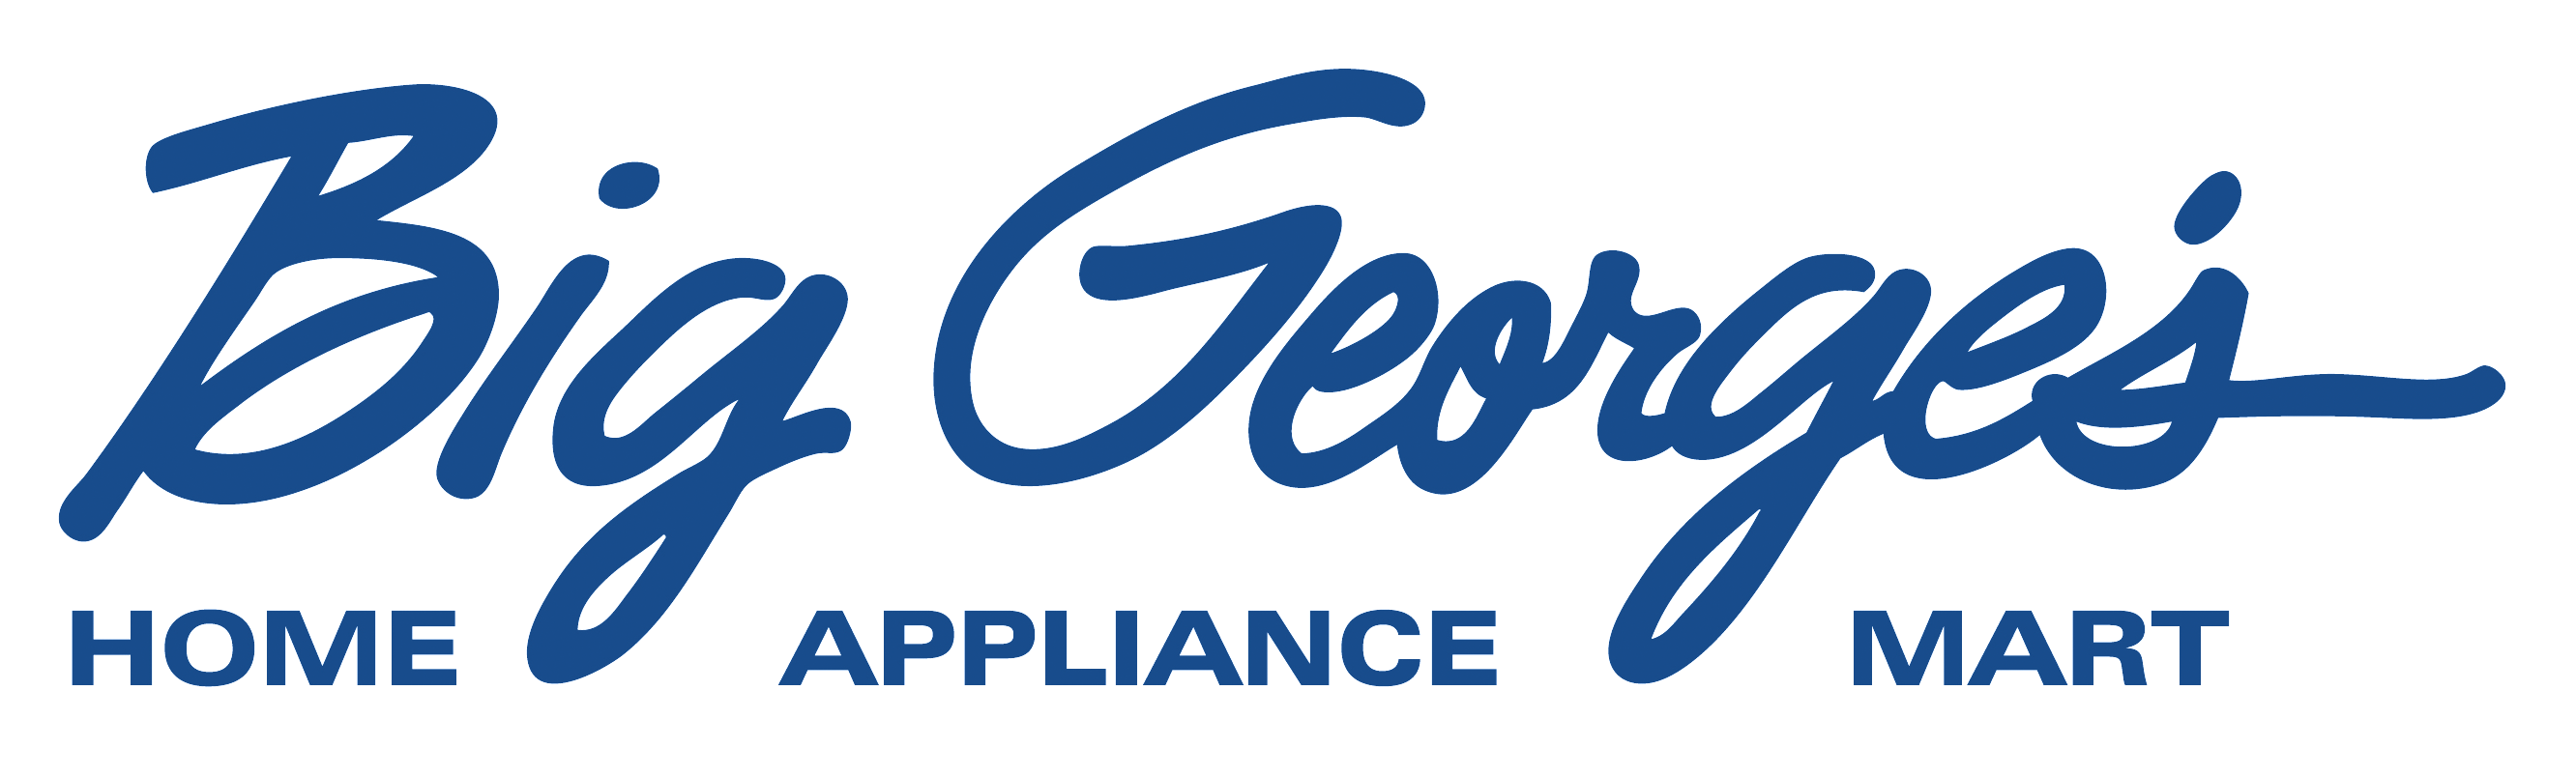 Big George's Home Appliance Mart Logo